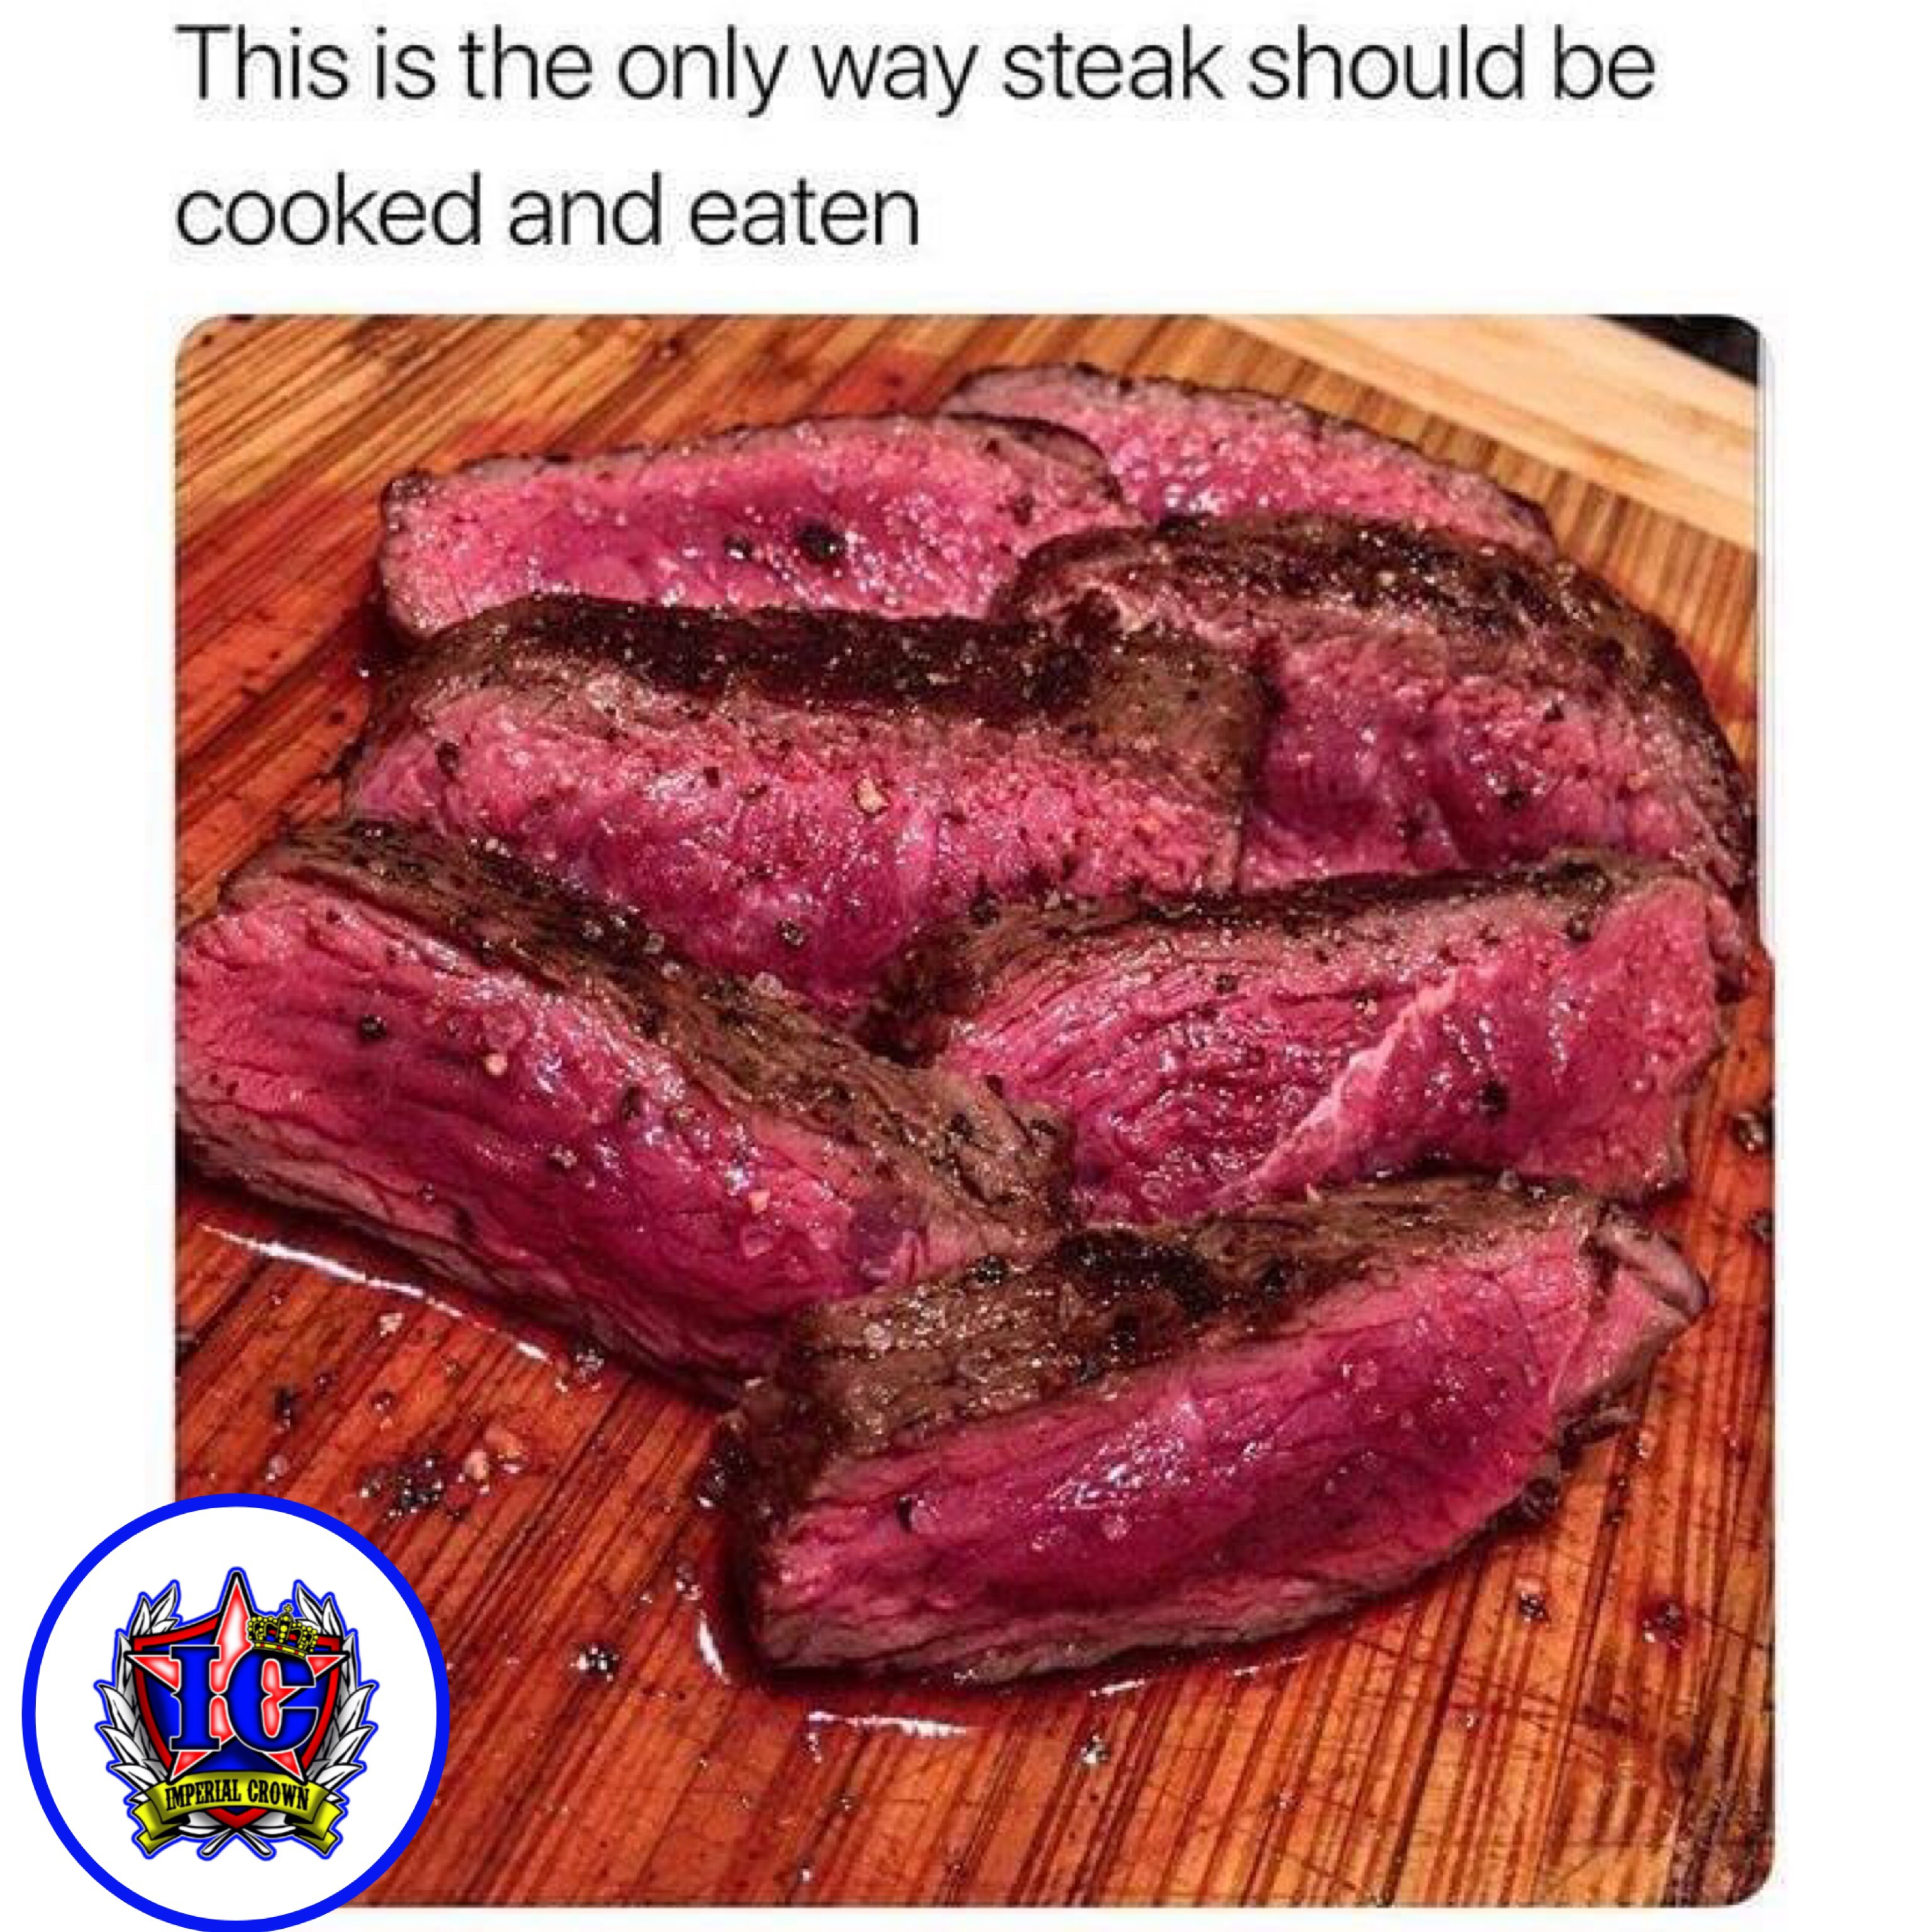 This is the only way steak should be cooked and eaten